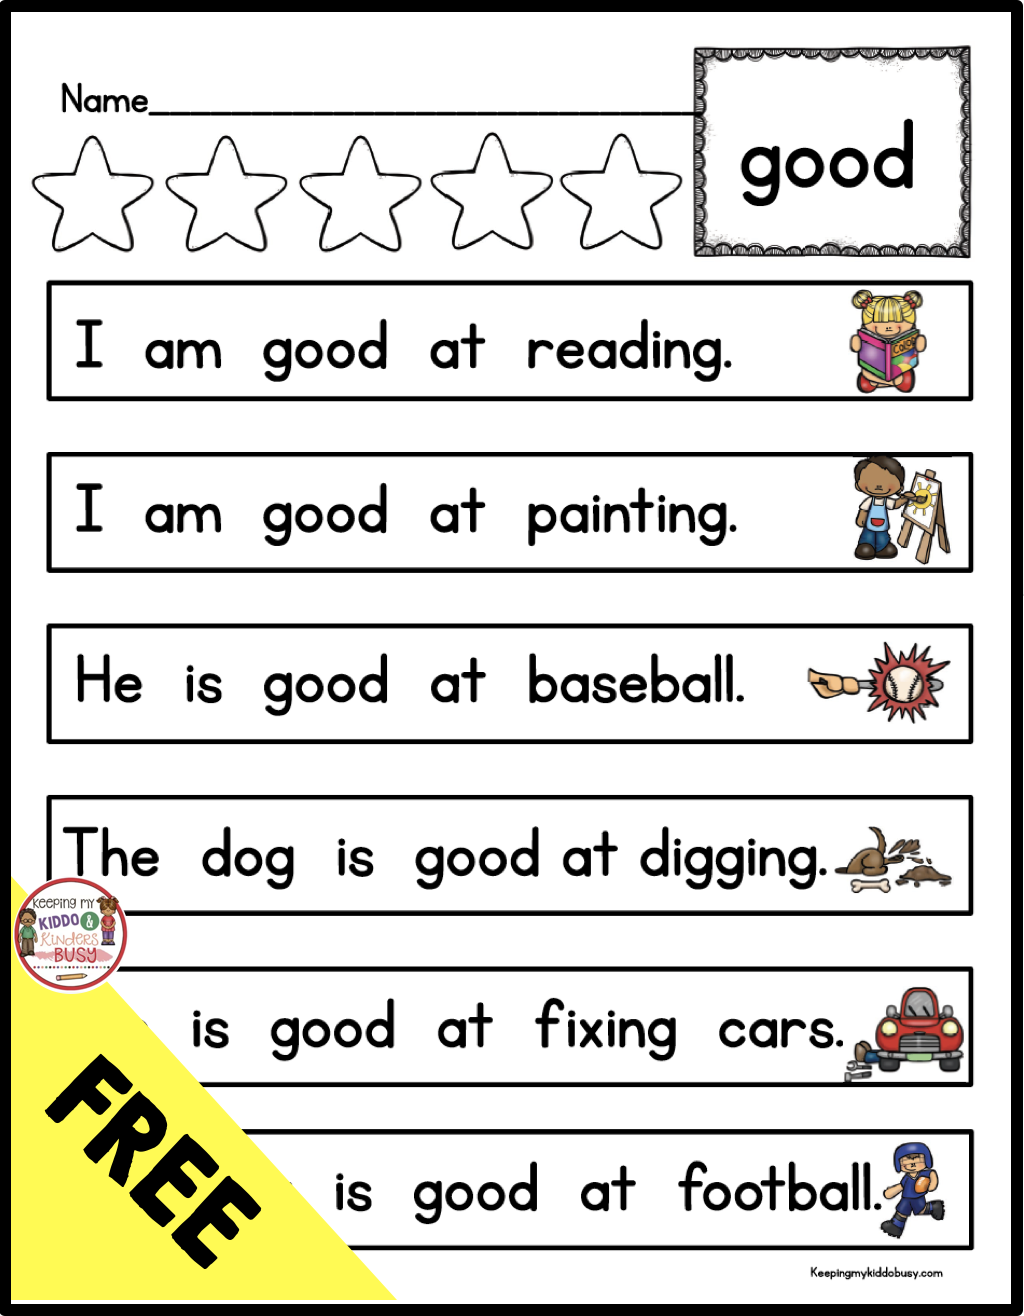 Free Sight Word Fluency Passages Easy Kindergarten Literacy Center Or Small Guided Reading Sight Word Flashcards Sight Words Printables Sight Word Sentences [ 1316 x 1024 Pixel ]